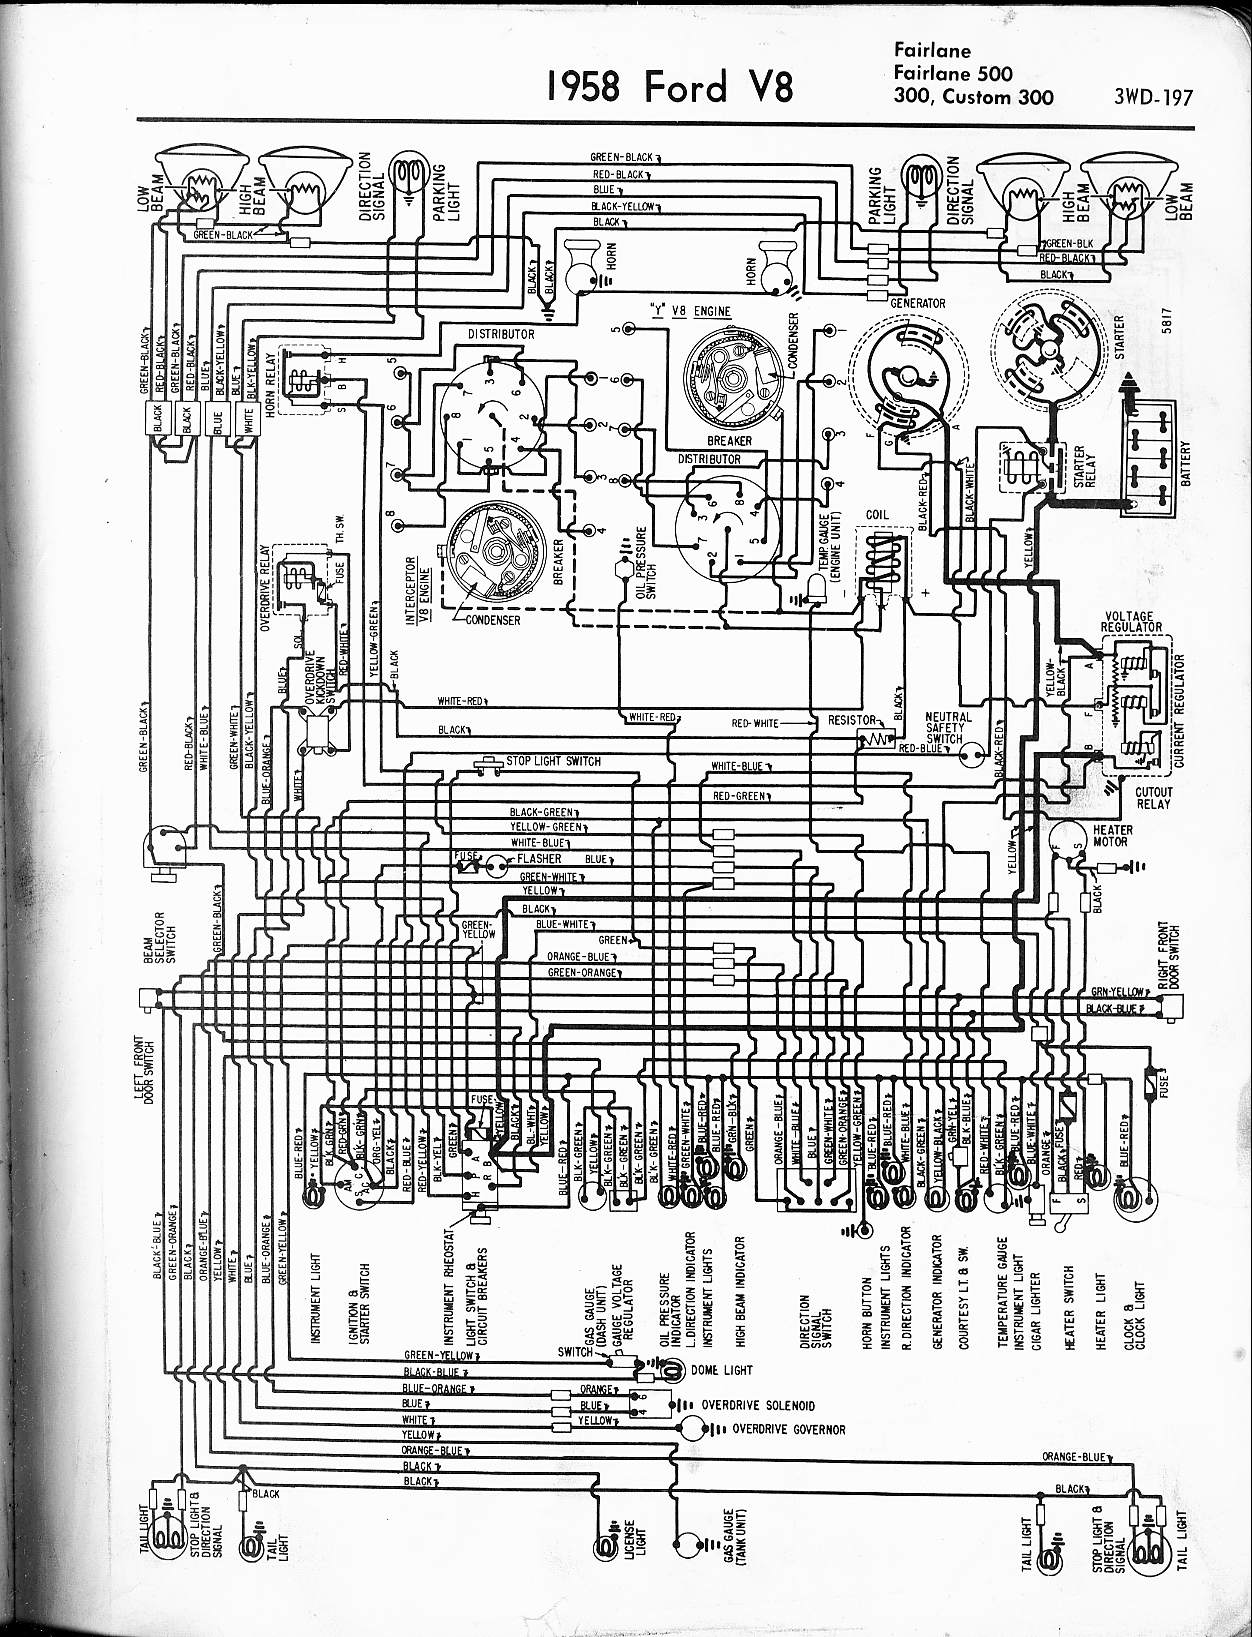 57 65 ford wiring diagrams rh oldcarmanualproject com 59 Ford Fairlane Wiring-Diagram 1974 Ford Pinto Wiring-Diagram